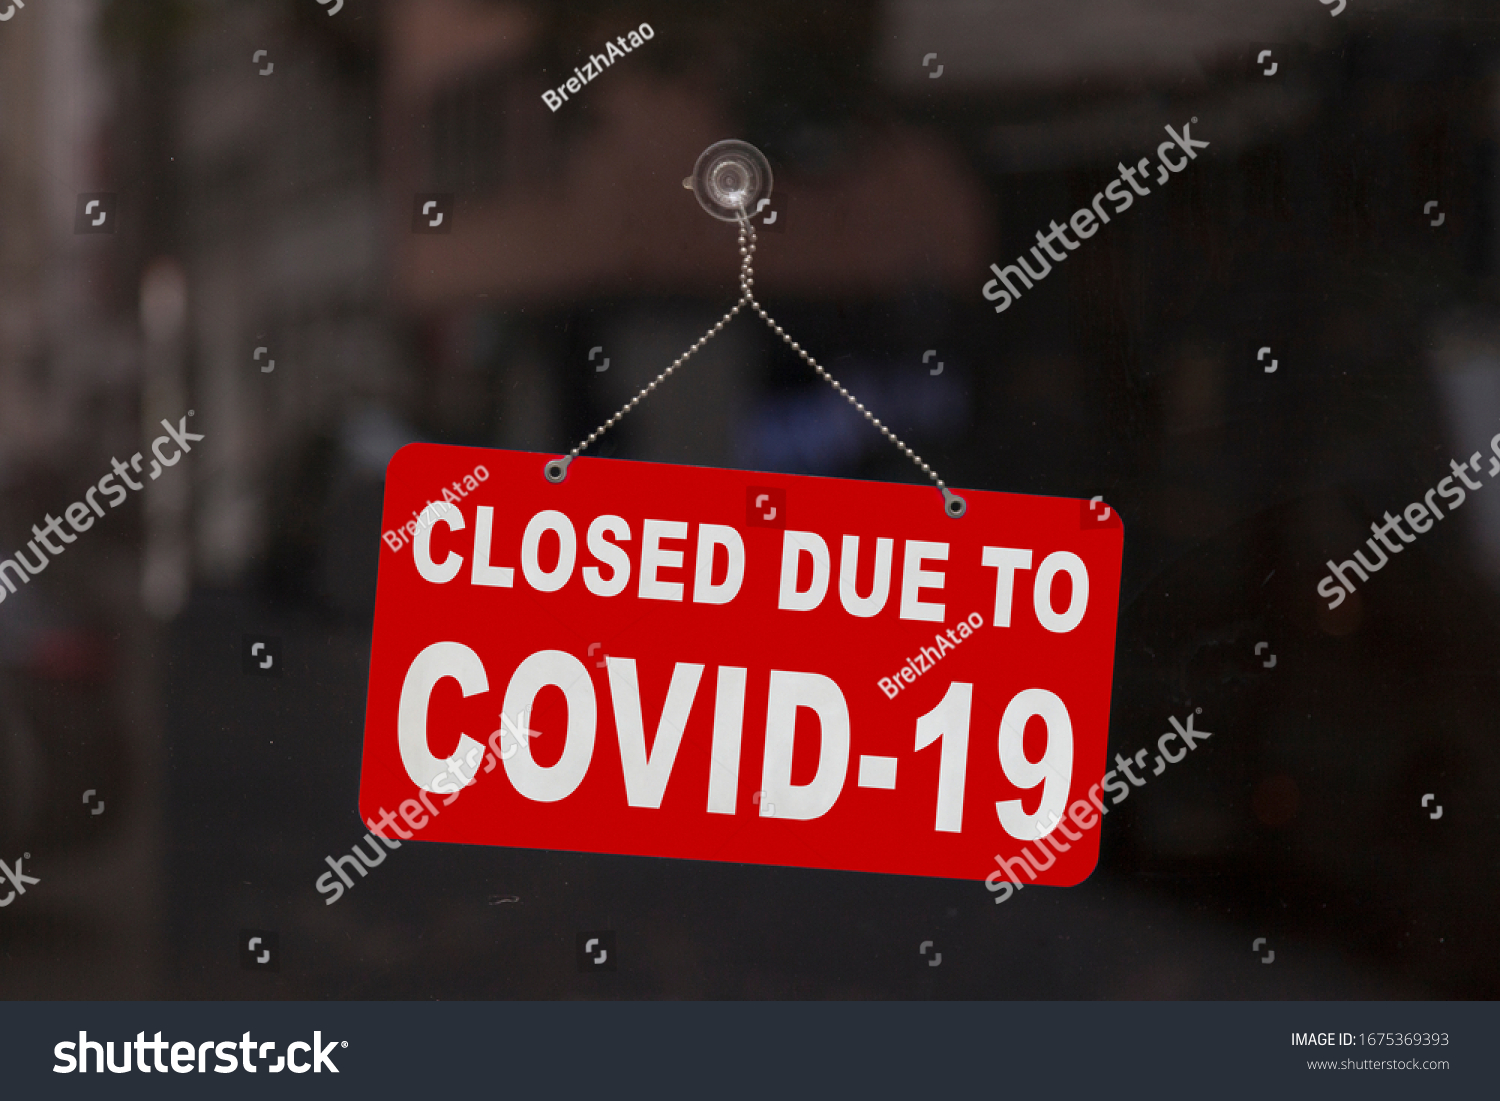 "Close-up on a red closed sign in the window of a shop displaying the message ""Closed due to Covid-19"". #1675369393"